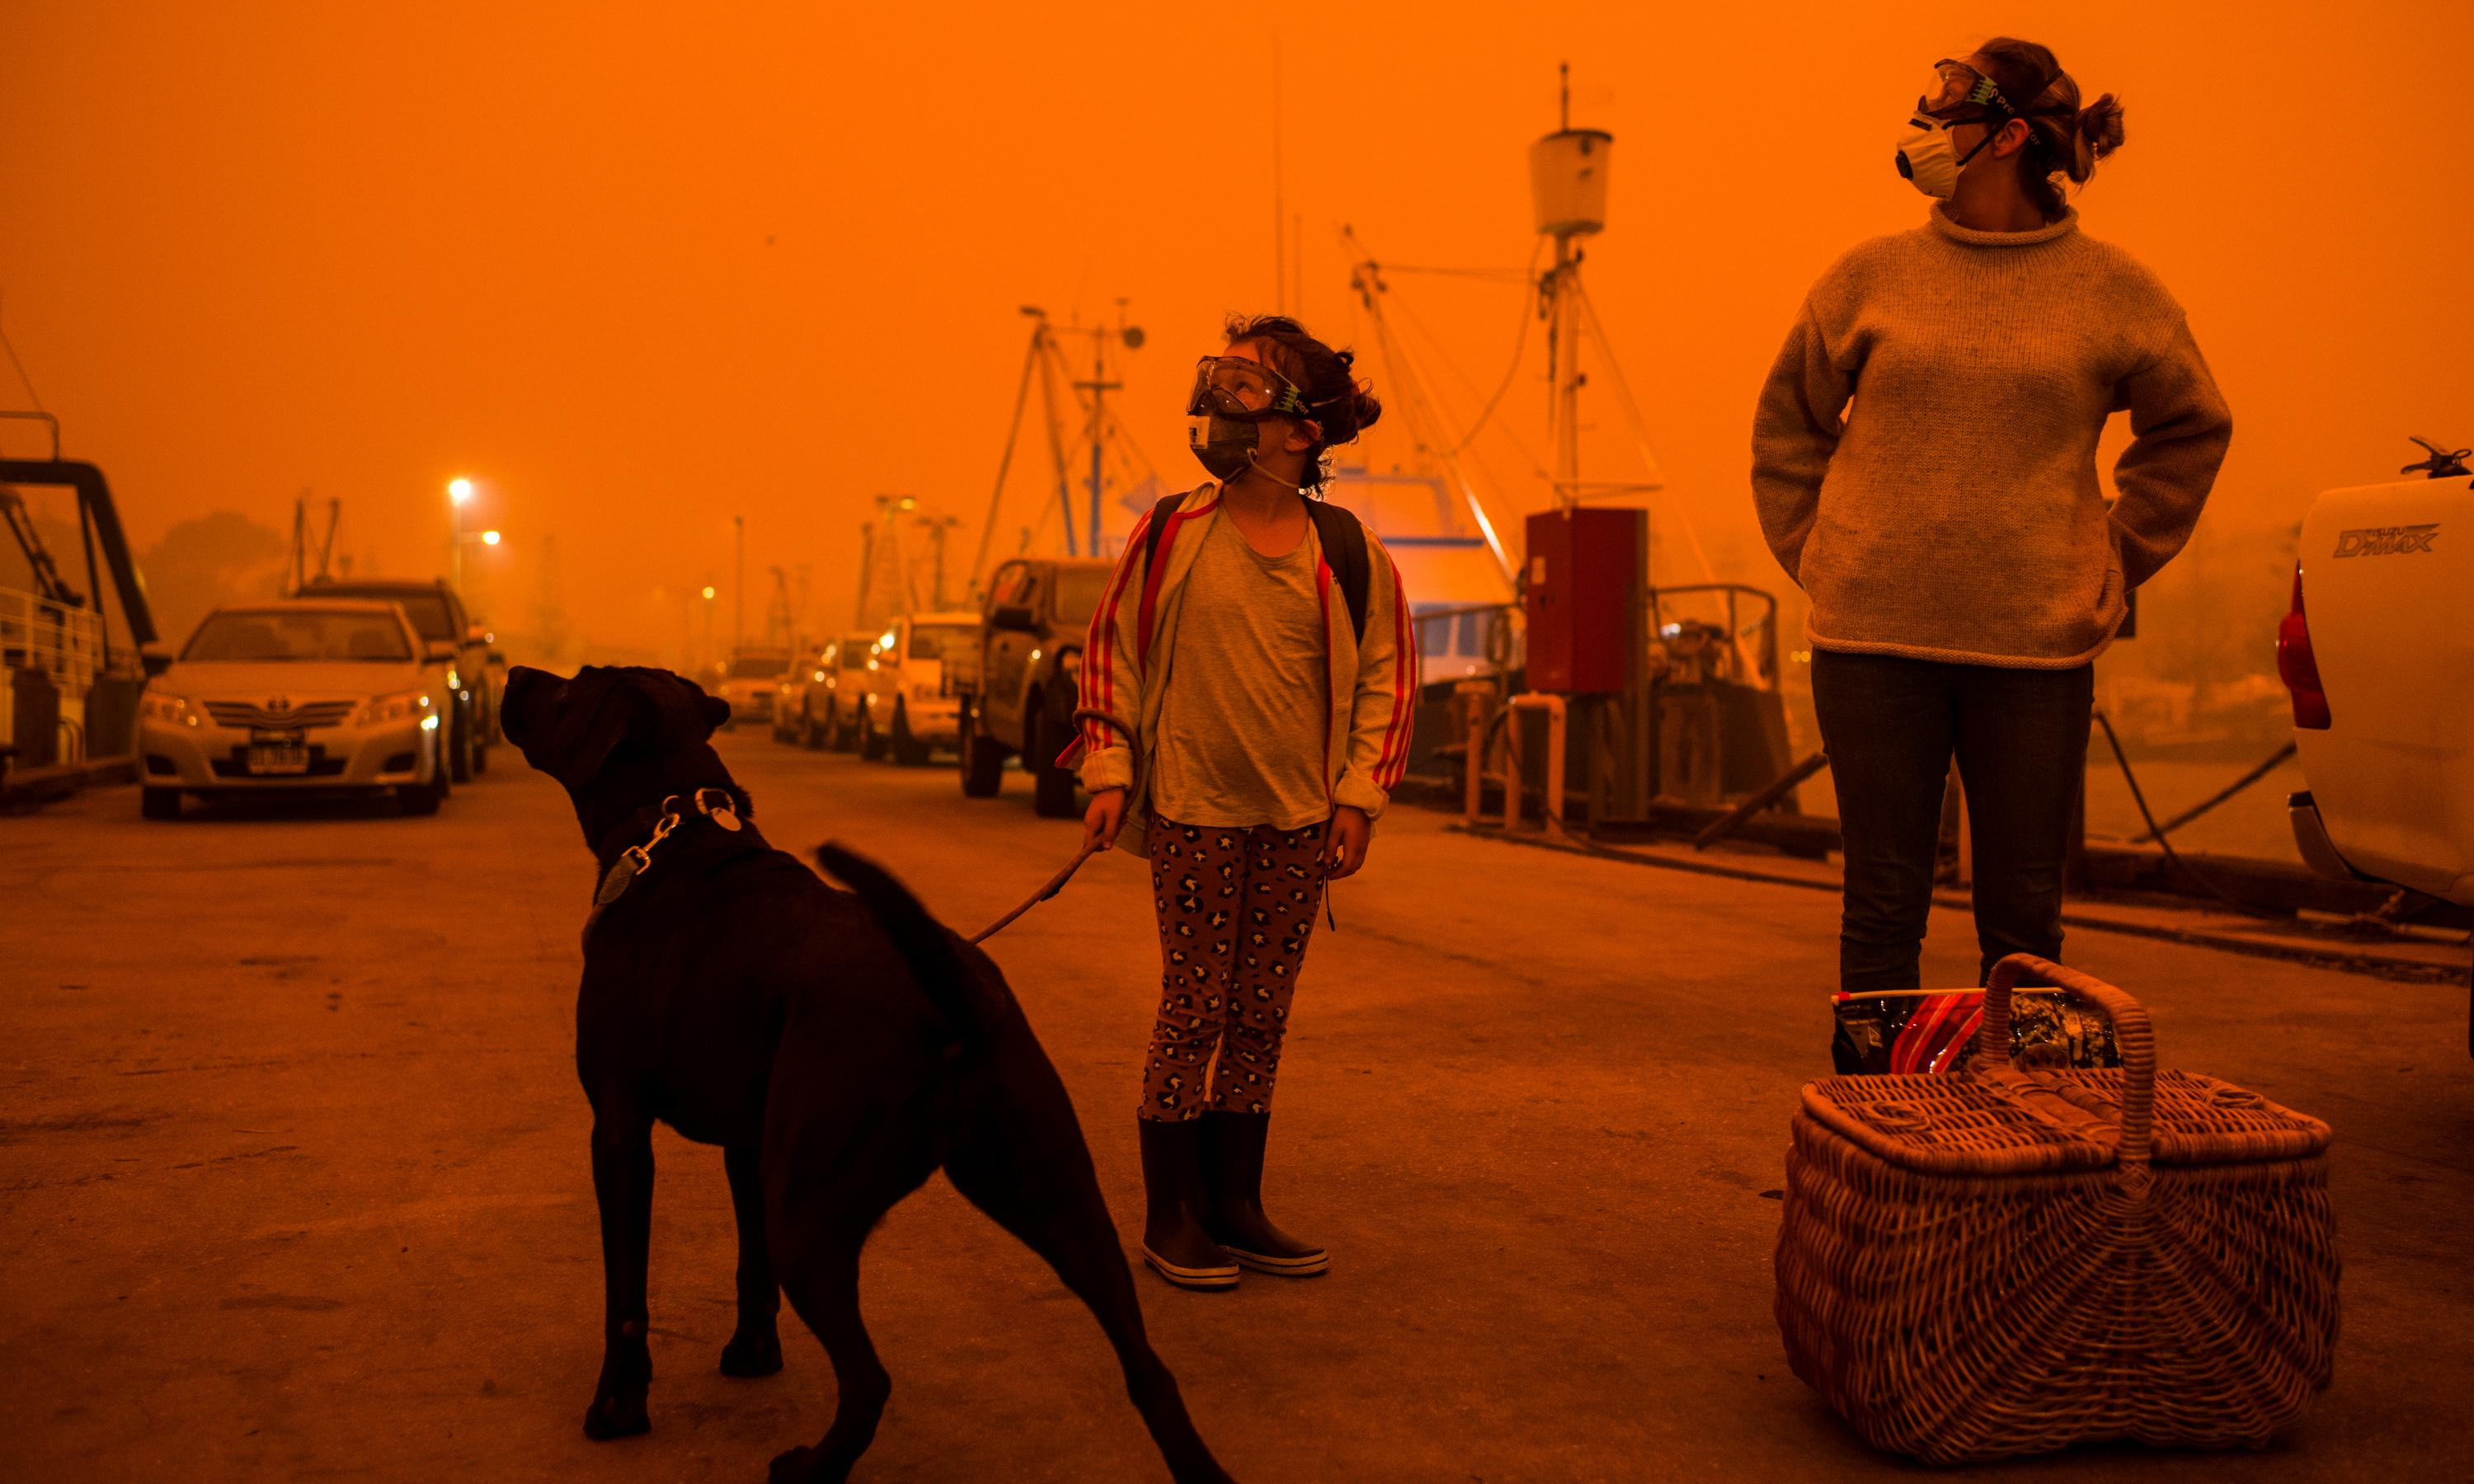 Pictures of the world on fire won't shock us for much longer